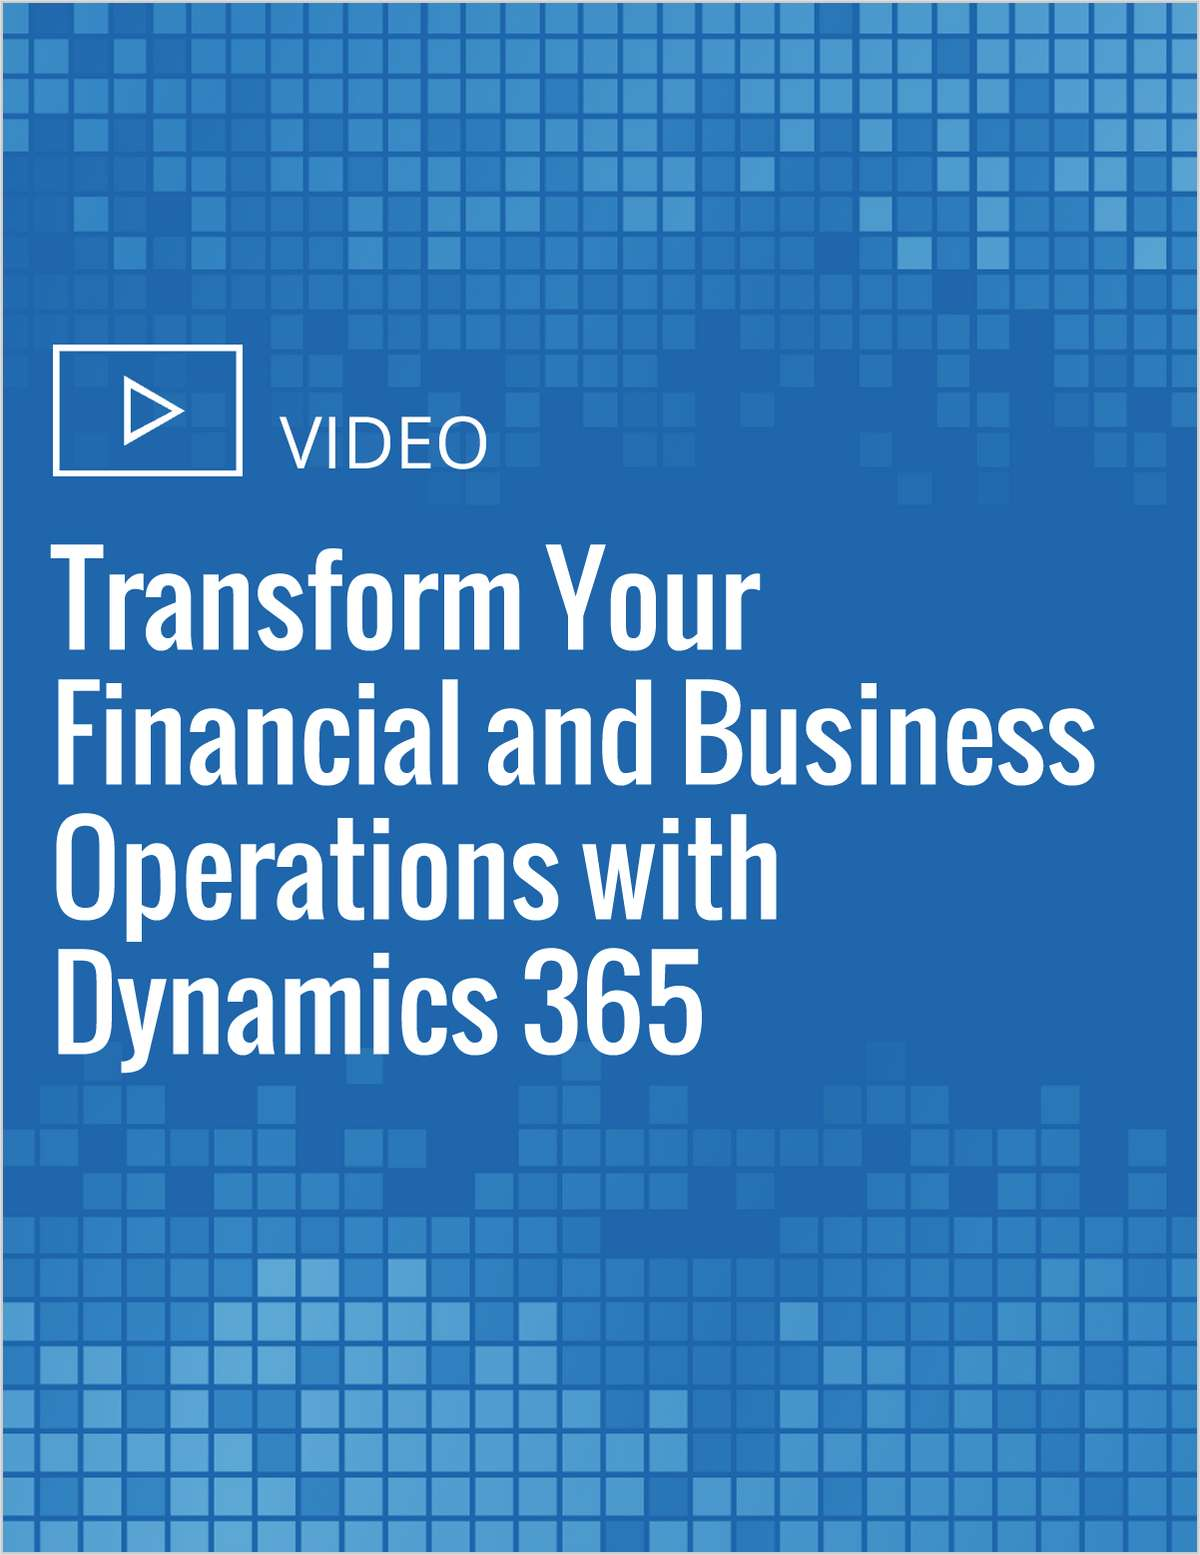 Transform Your Financial and Business Operations with Dynamics 365